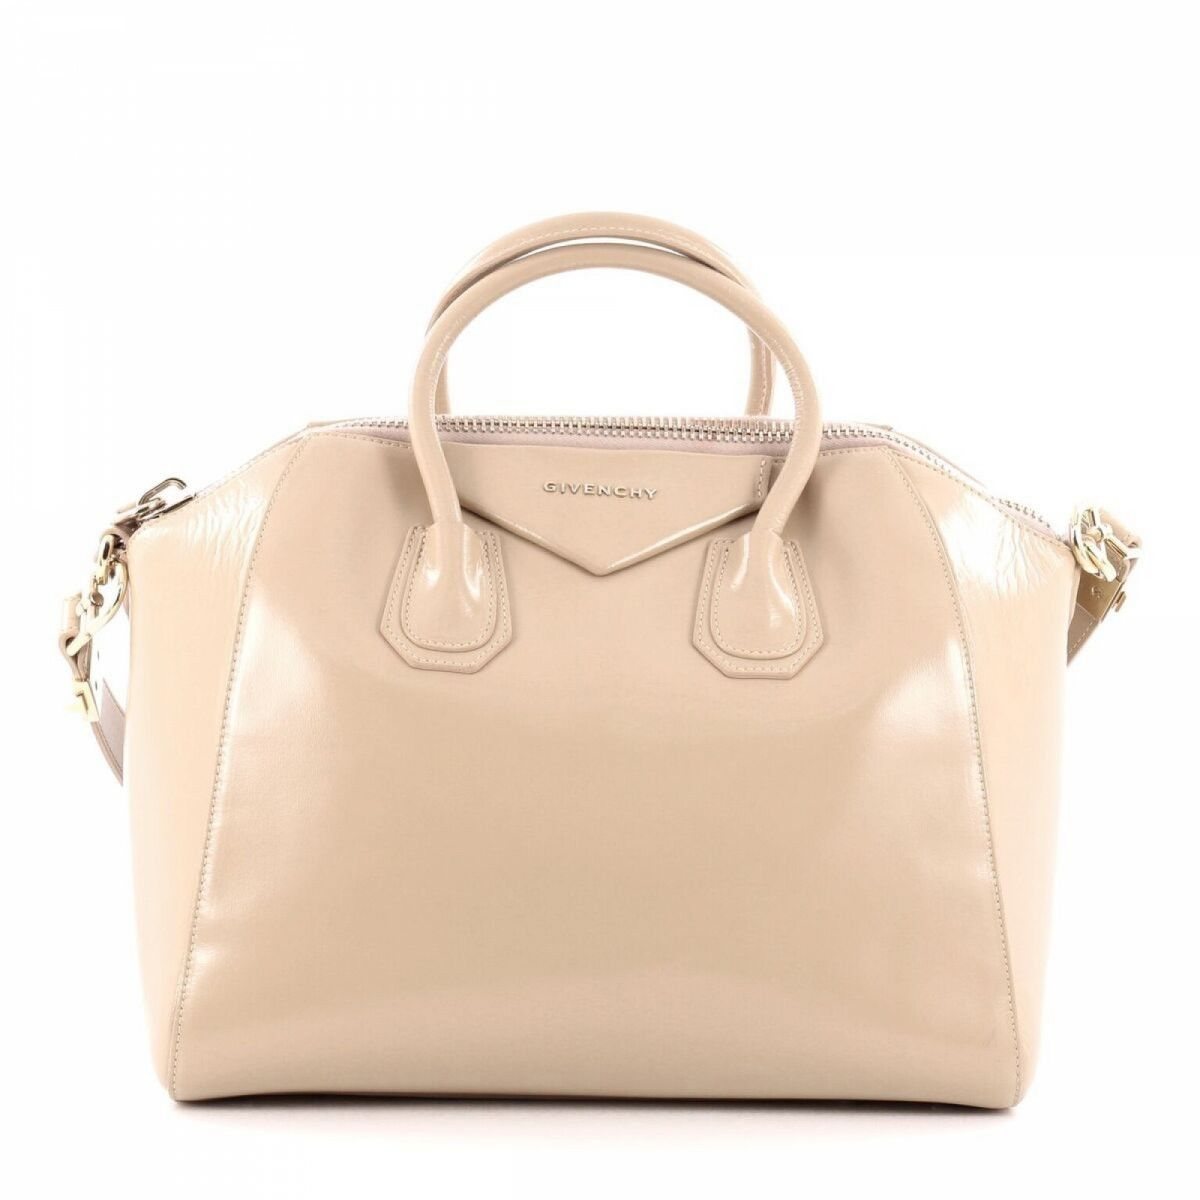 Givenchy Antigona Bag Glazed Leather Medium c9bAlD